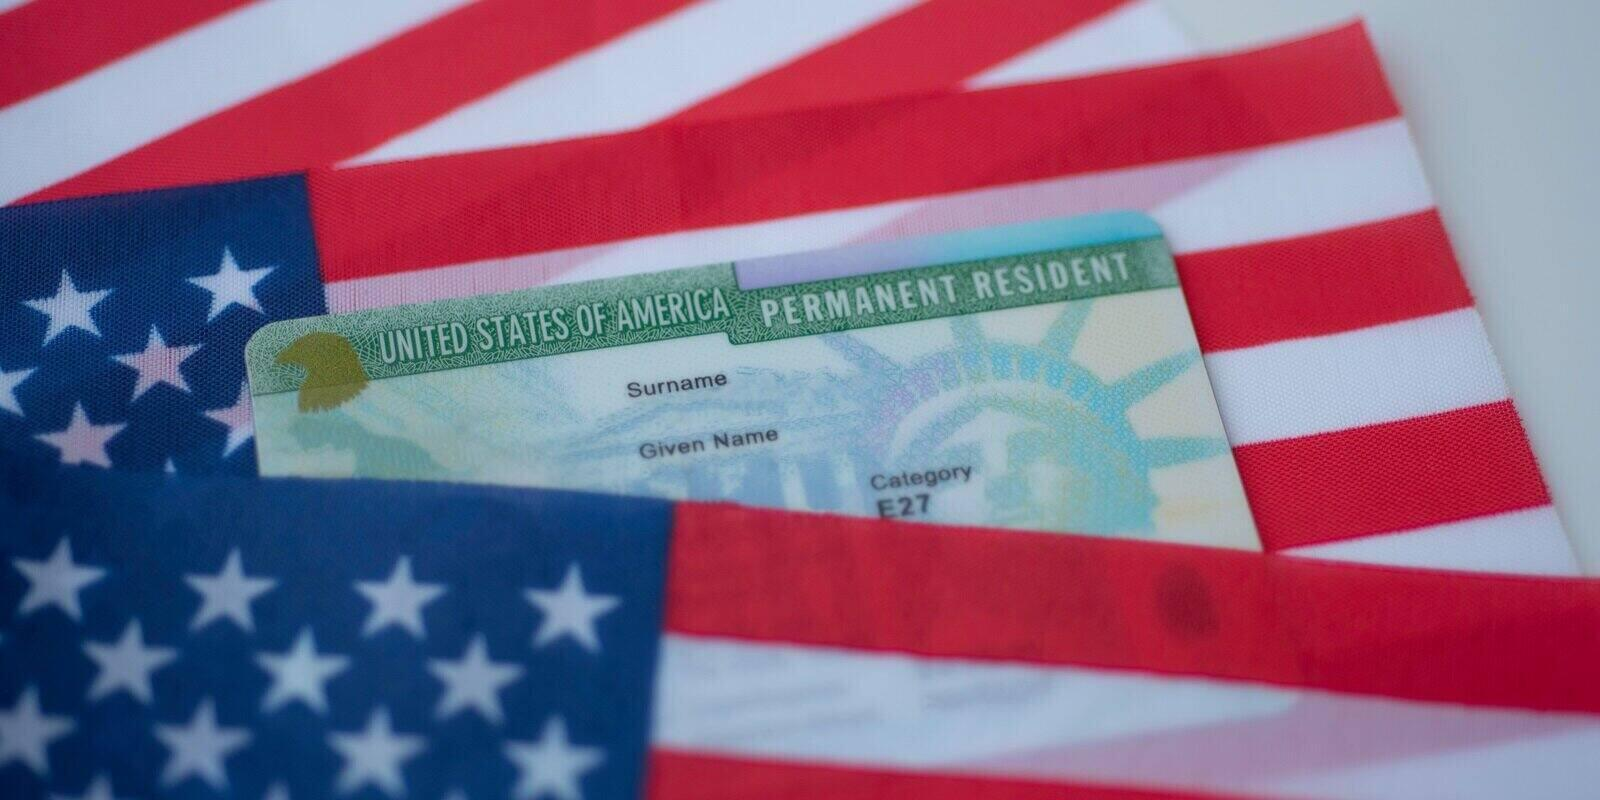 permanent resident green card of united states on flag of usa surface